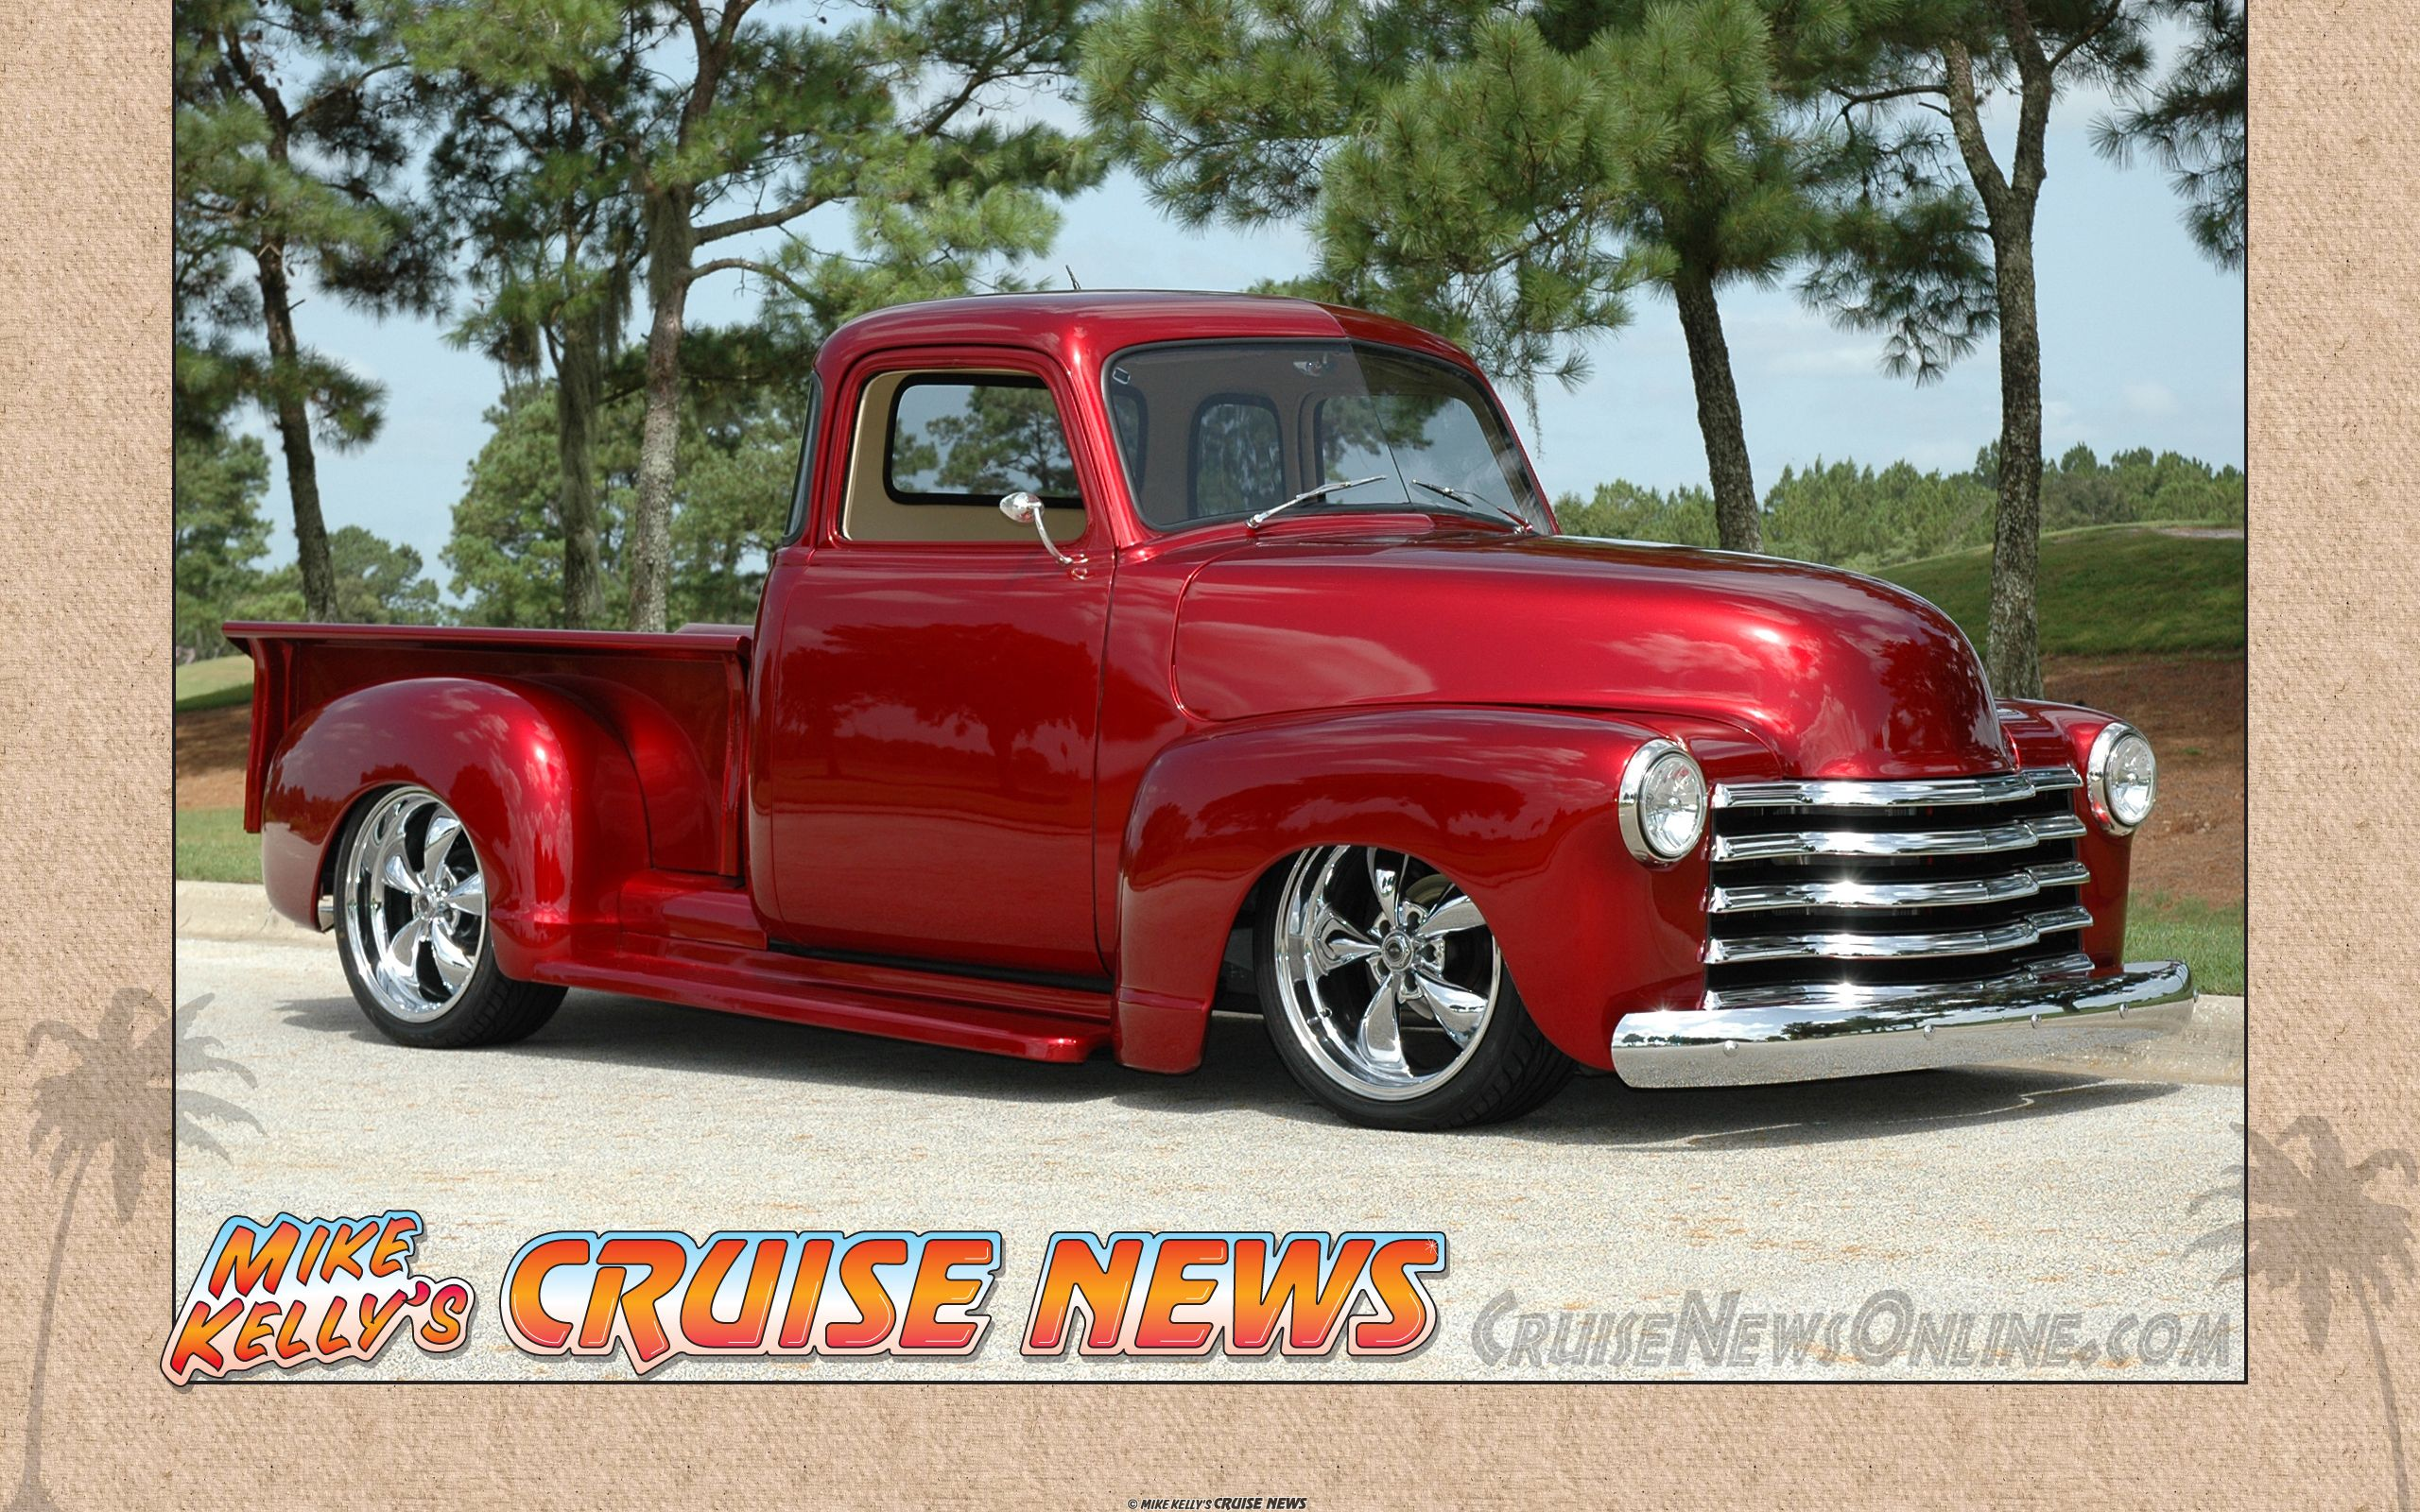 Special Items Mike Kelly S Cruise News 1949 Chevy Truck Chevy Trucks Chevrolet Trucks